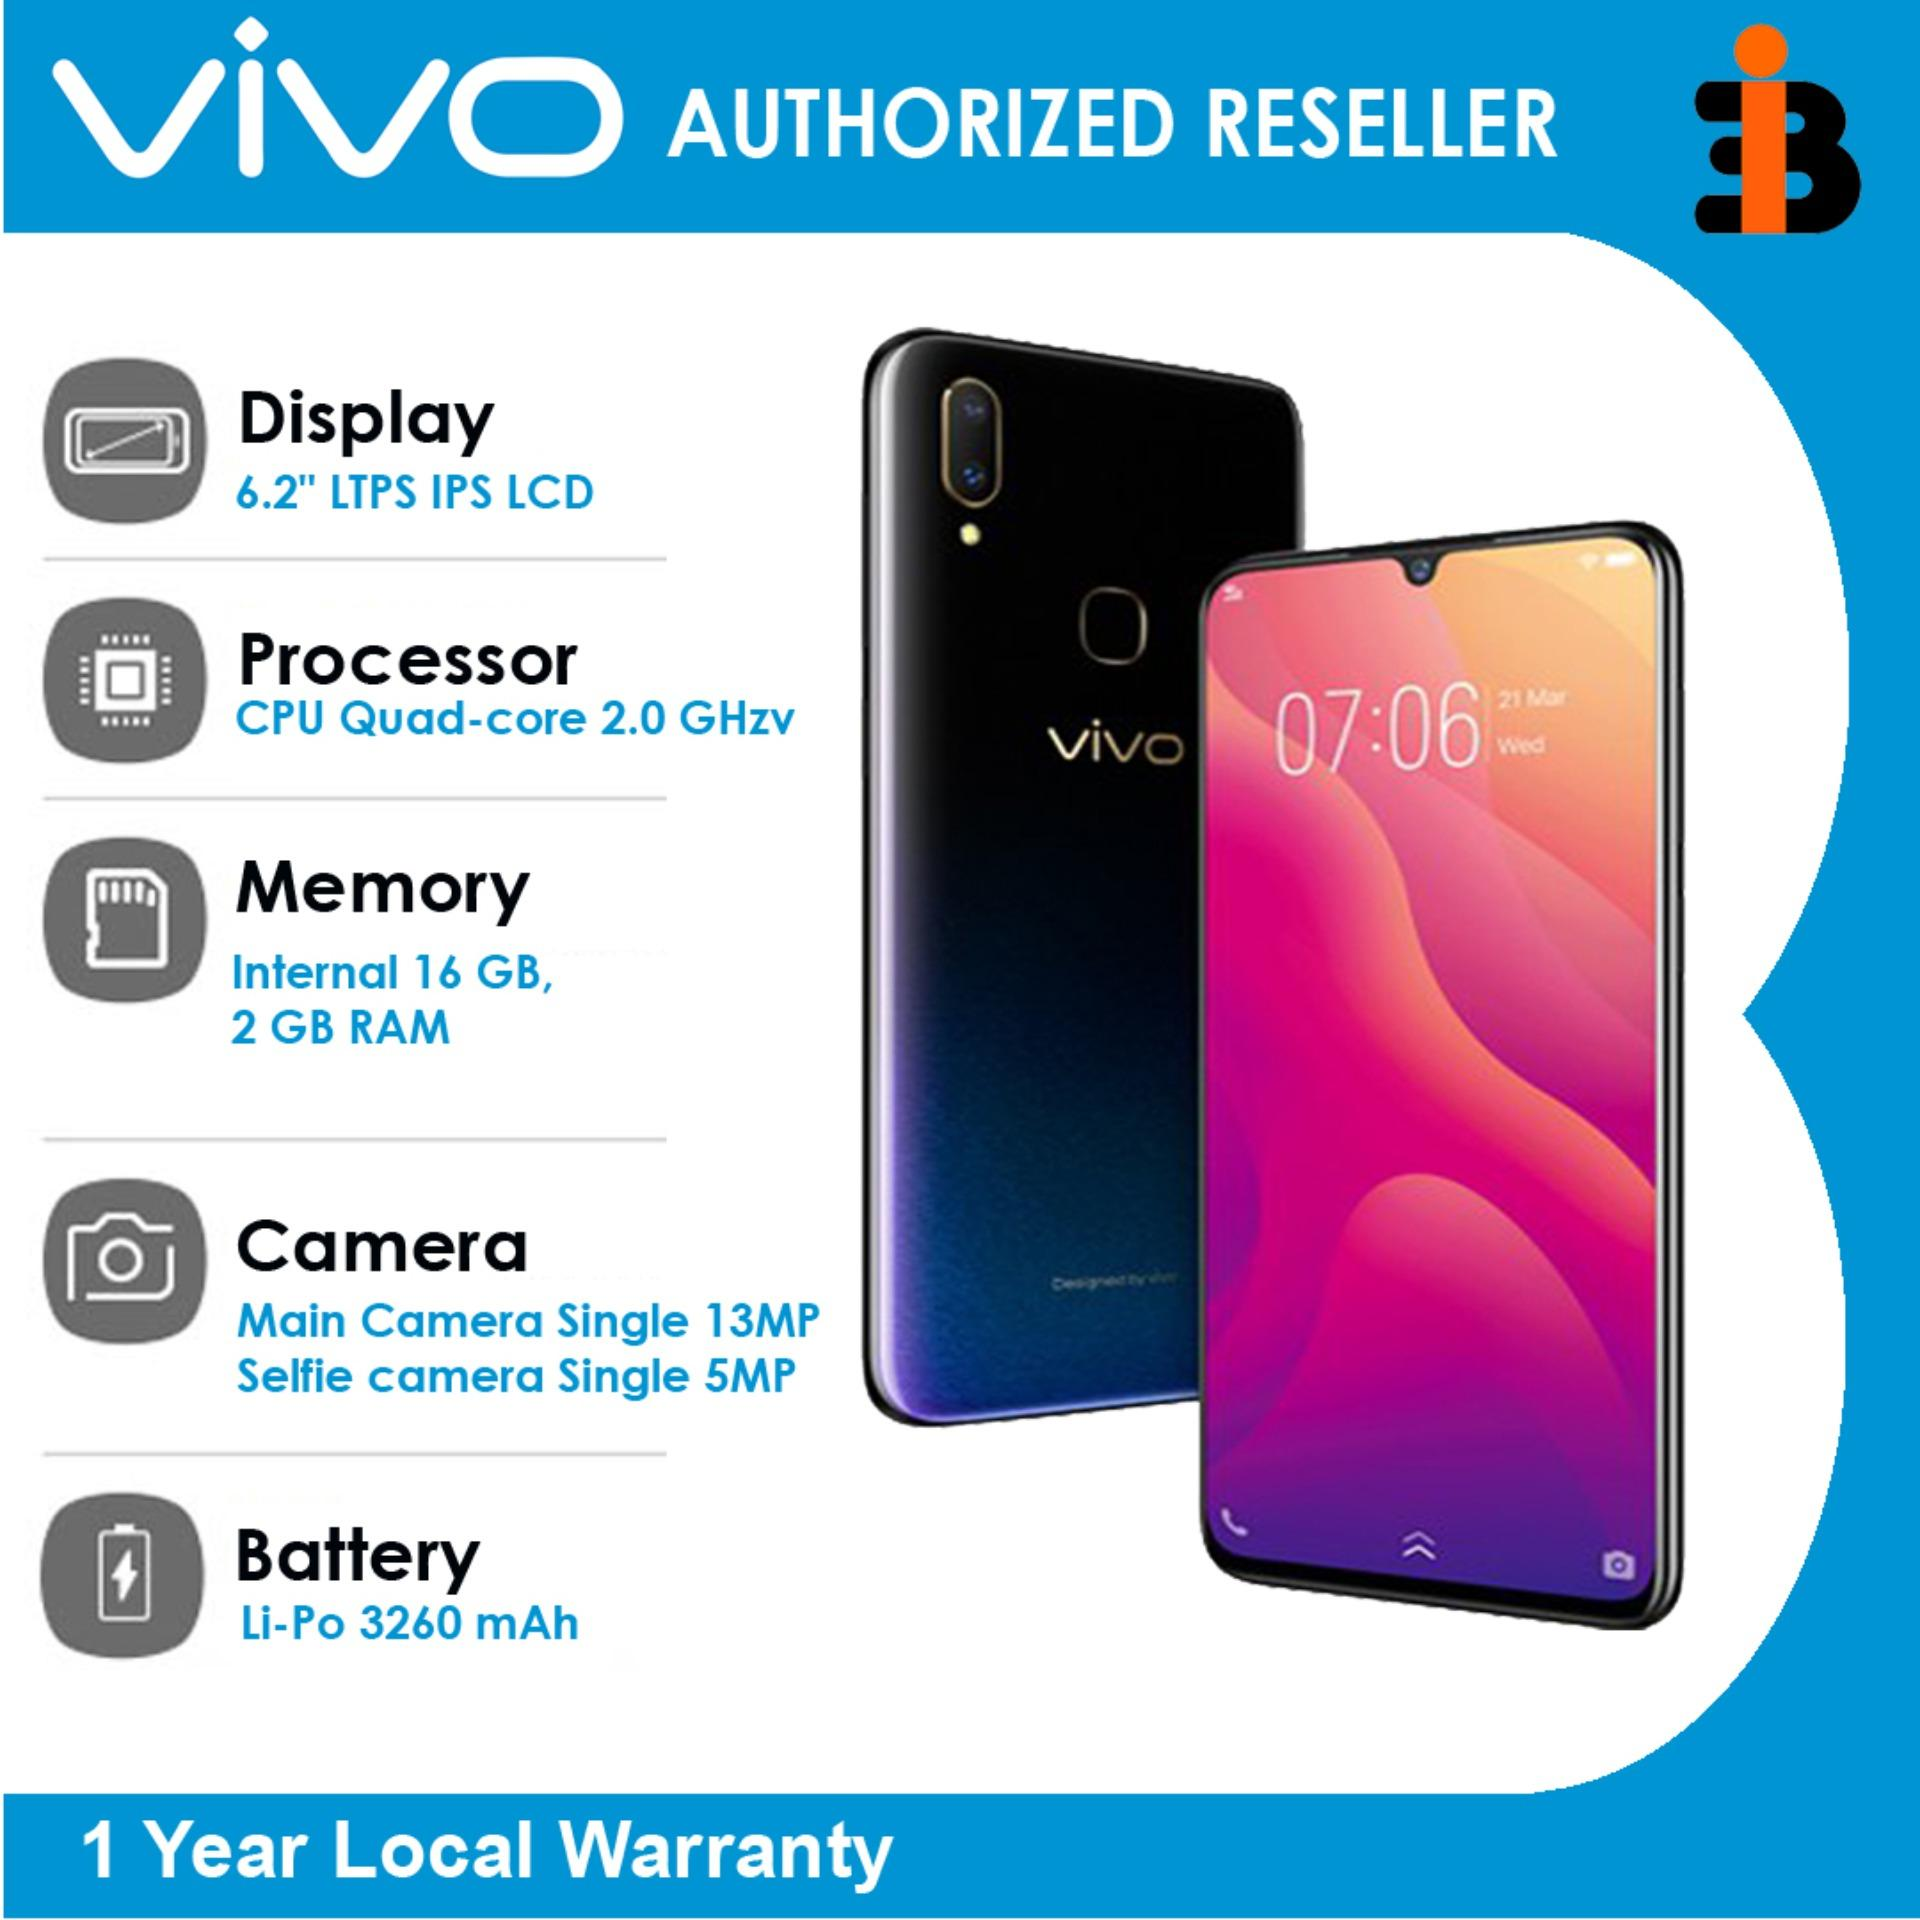 "Vivo V11i 6.3"" Internal 128 GB+4GBRAM, Main Camera Dual 16MP+5MP,Selfie 25MP, OS Android 8.1 (Oreo),CPU Octa-core,Li-Po 3315 mAh battery With 1 Year Local Warranty Authentic/Original Mobile Phone"